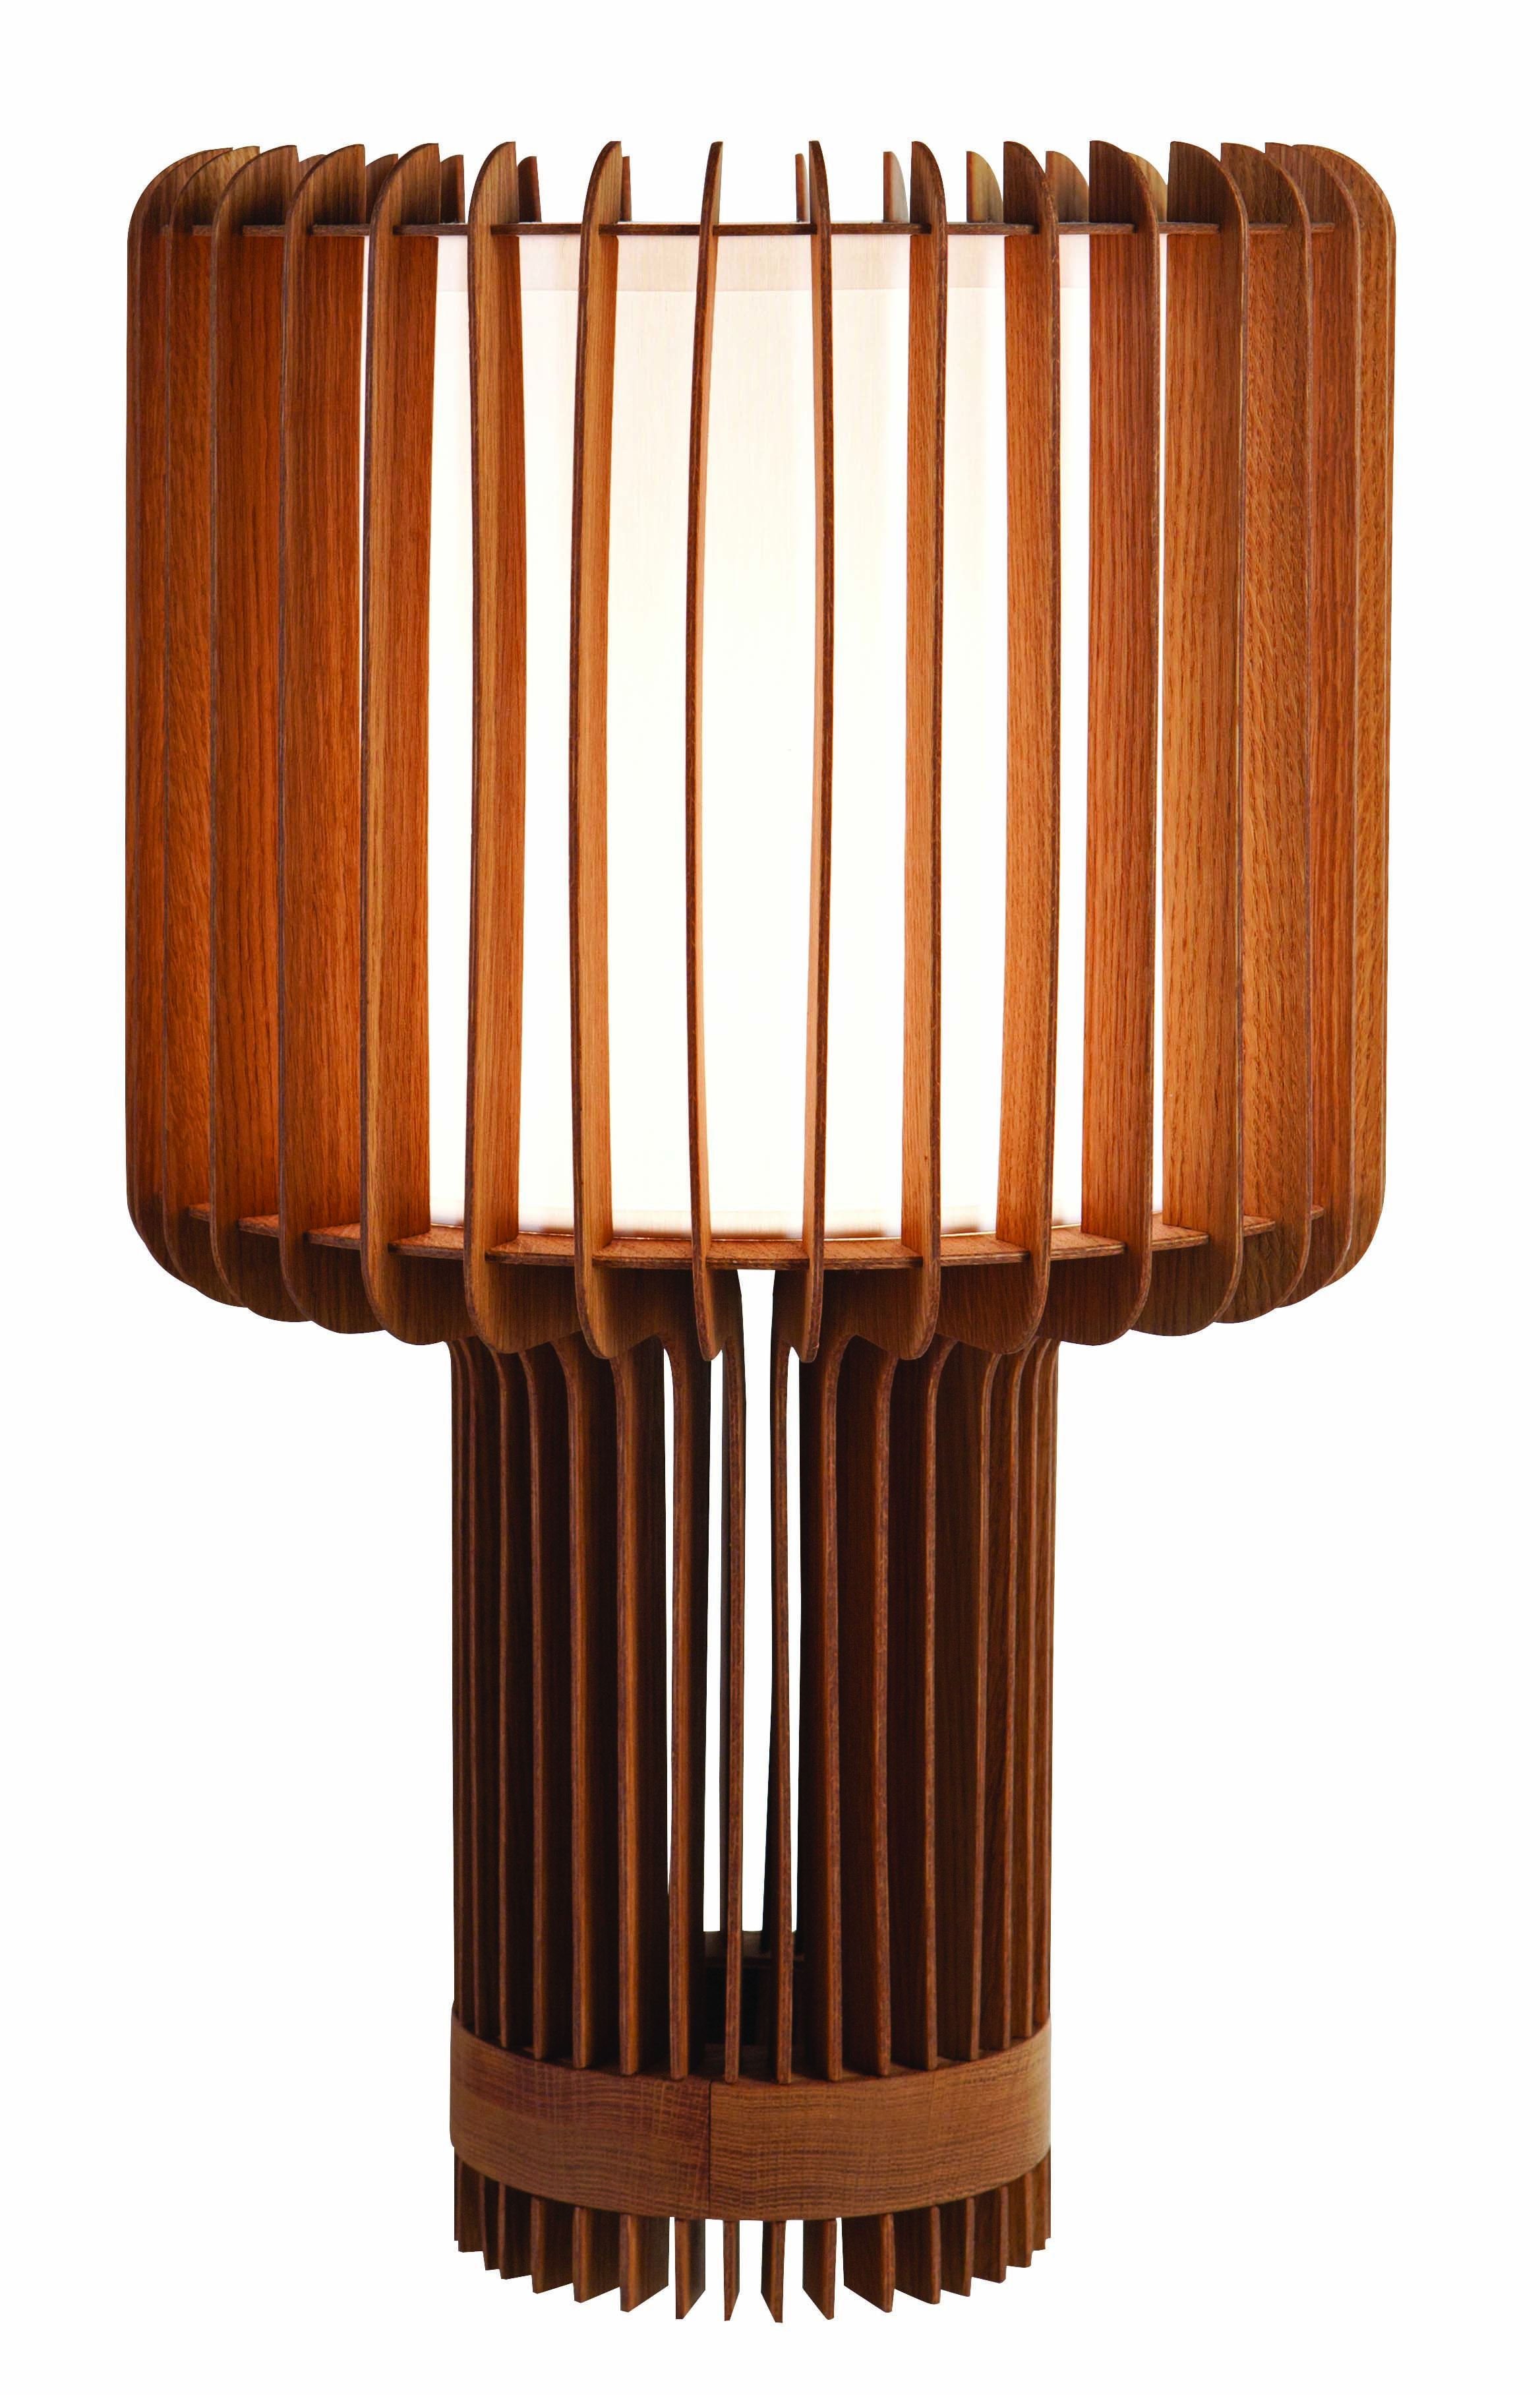 Roche Bobois Turbine Lamp With Oak Structure And White Fabric Shade Design Renaud Thiry Rochebobois Lamp Lighting Oa Lamp Eclectic Lighting Lamp Design